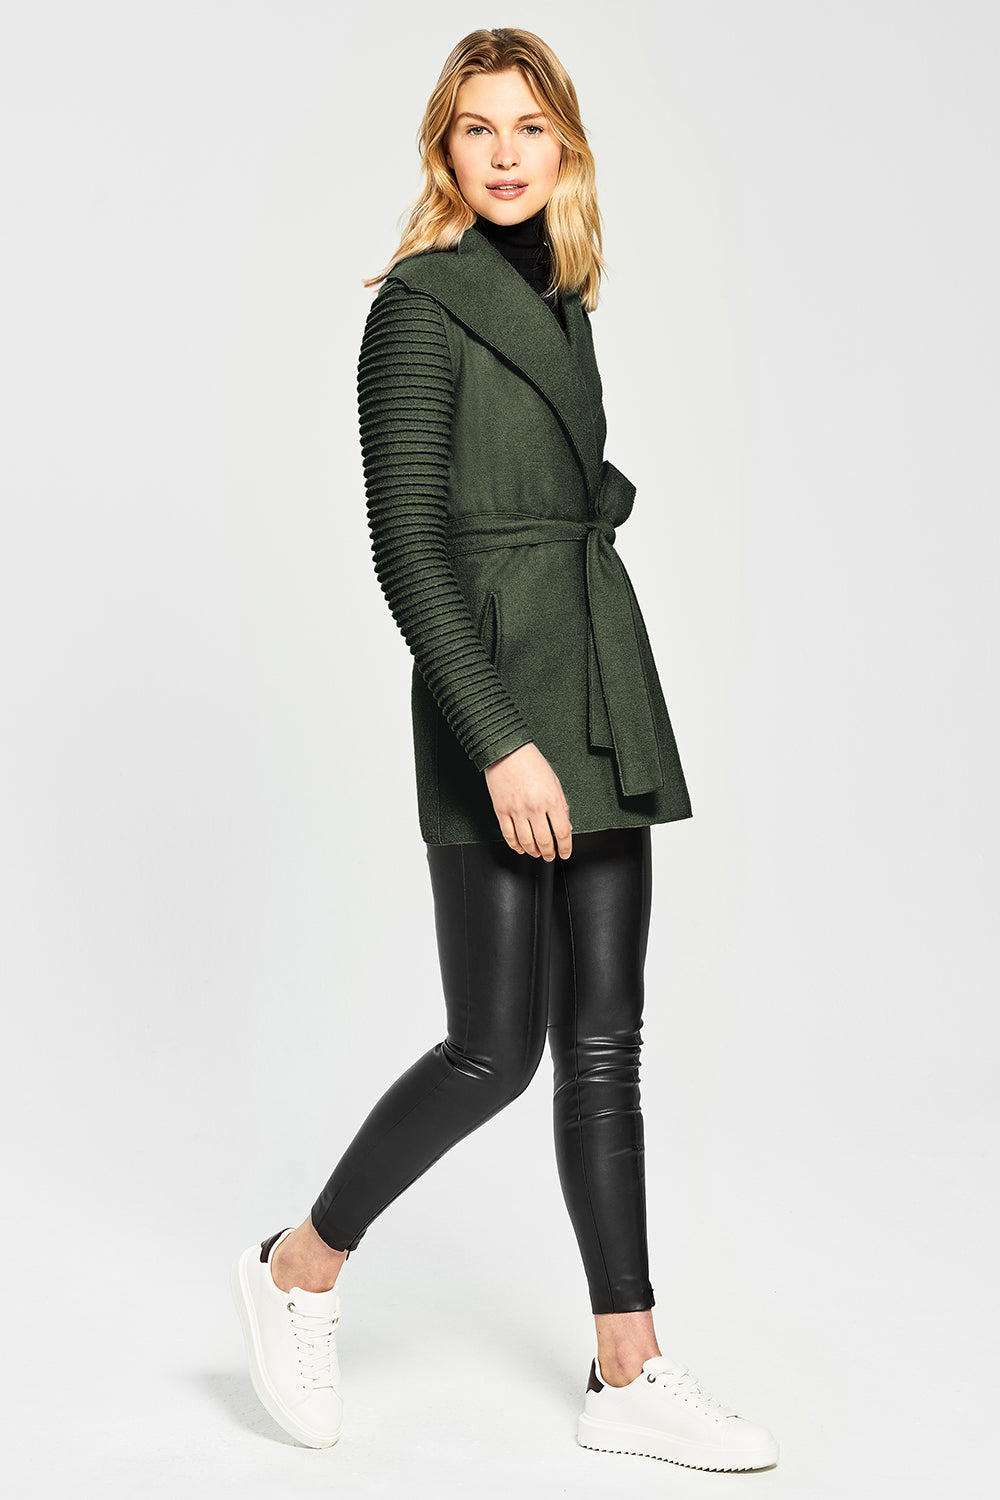 Sentaler Wrap Coat with Ribbed Sleeves featured in Superfine Alpaca and available in Army Green. Seen from Side.